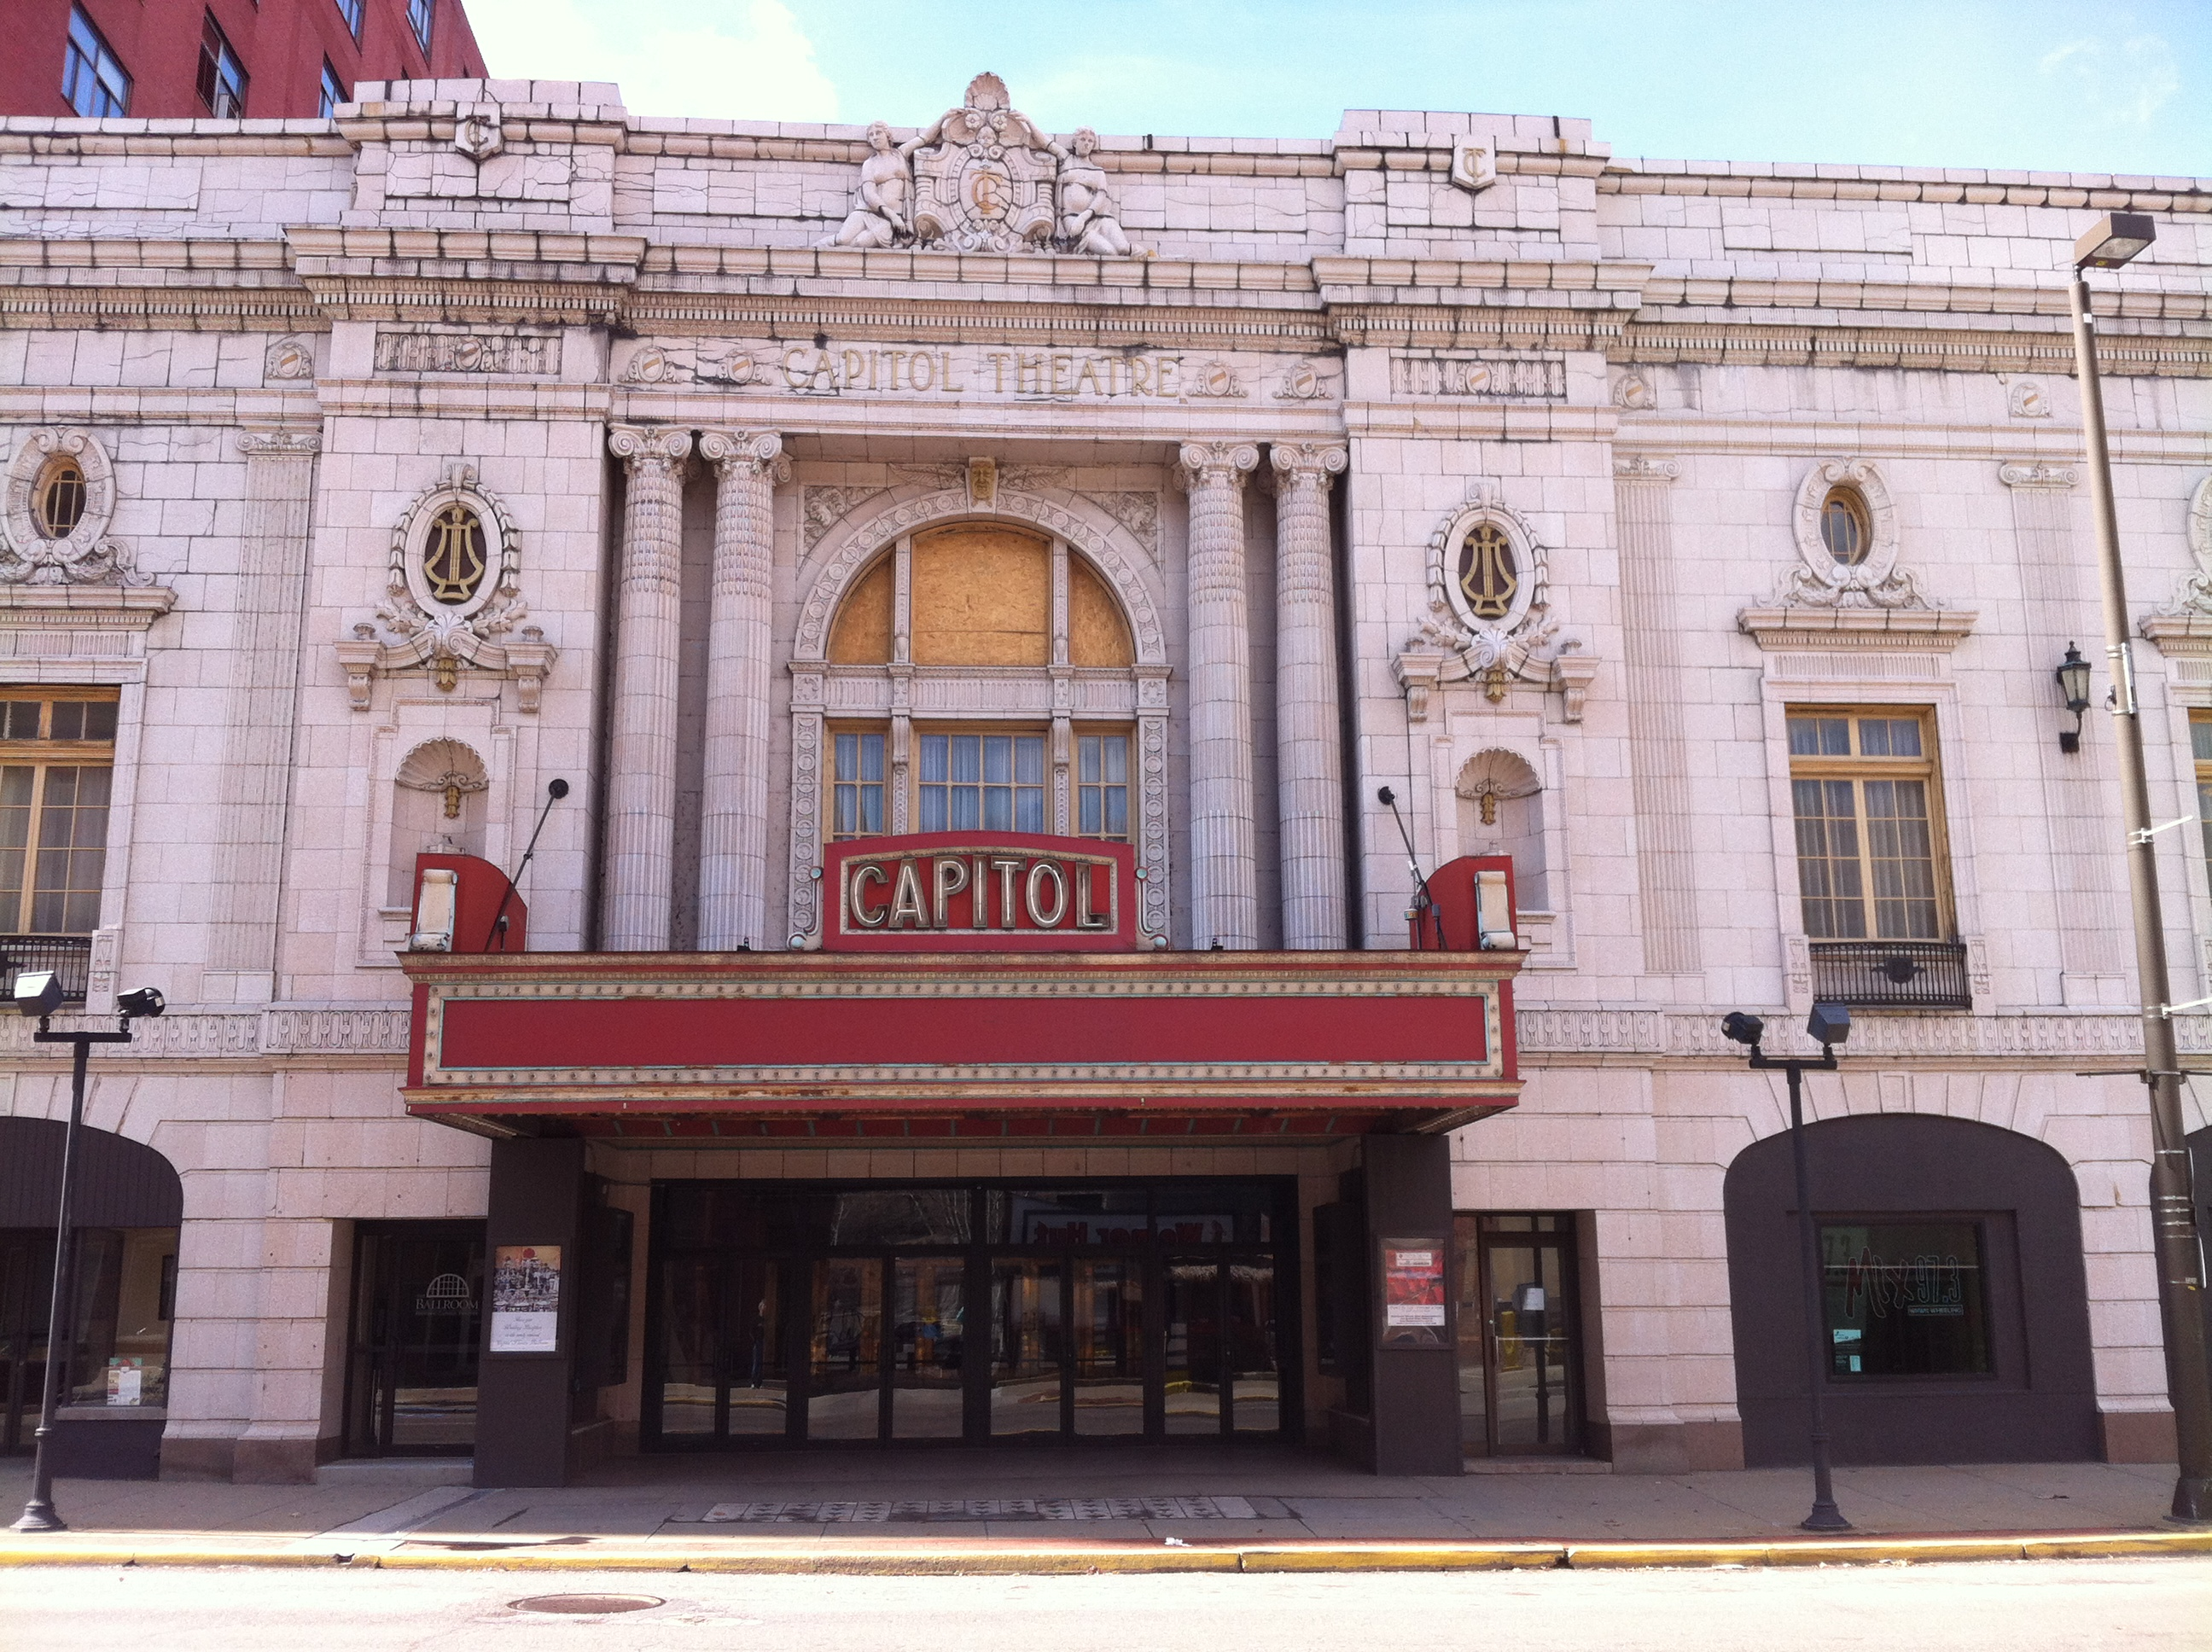 The Capitol Theatre opened in 1928. Thanks to the efforts of preservationists, it once again hosts events and performances.